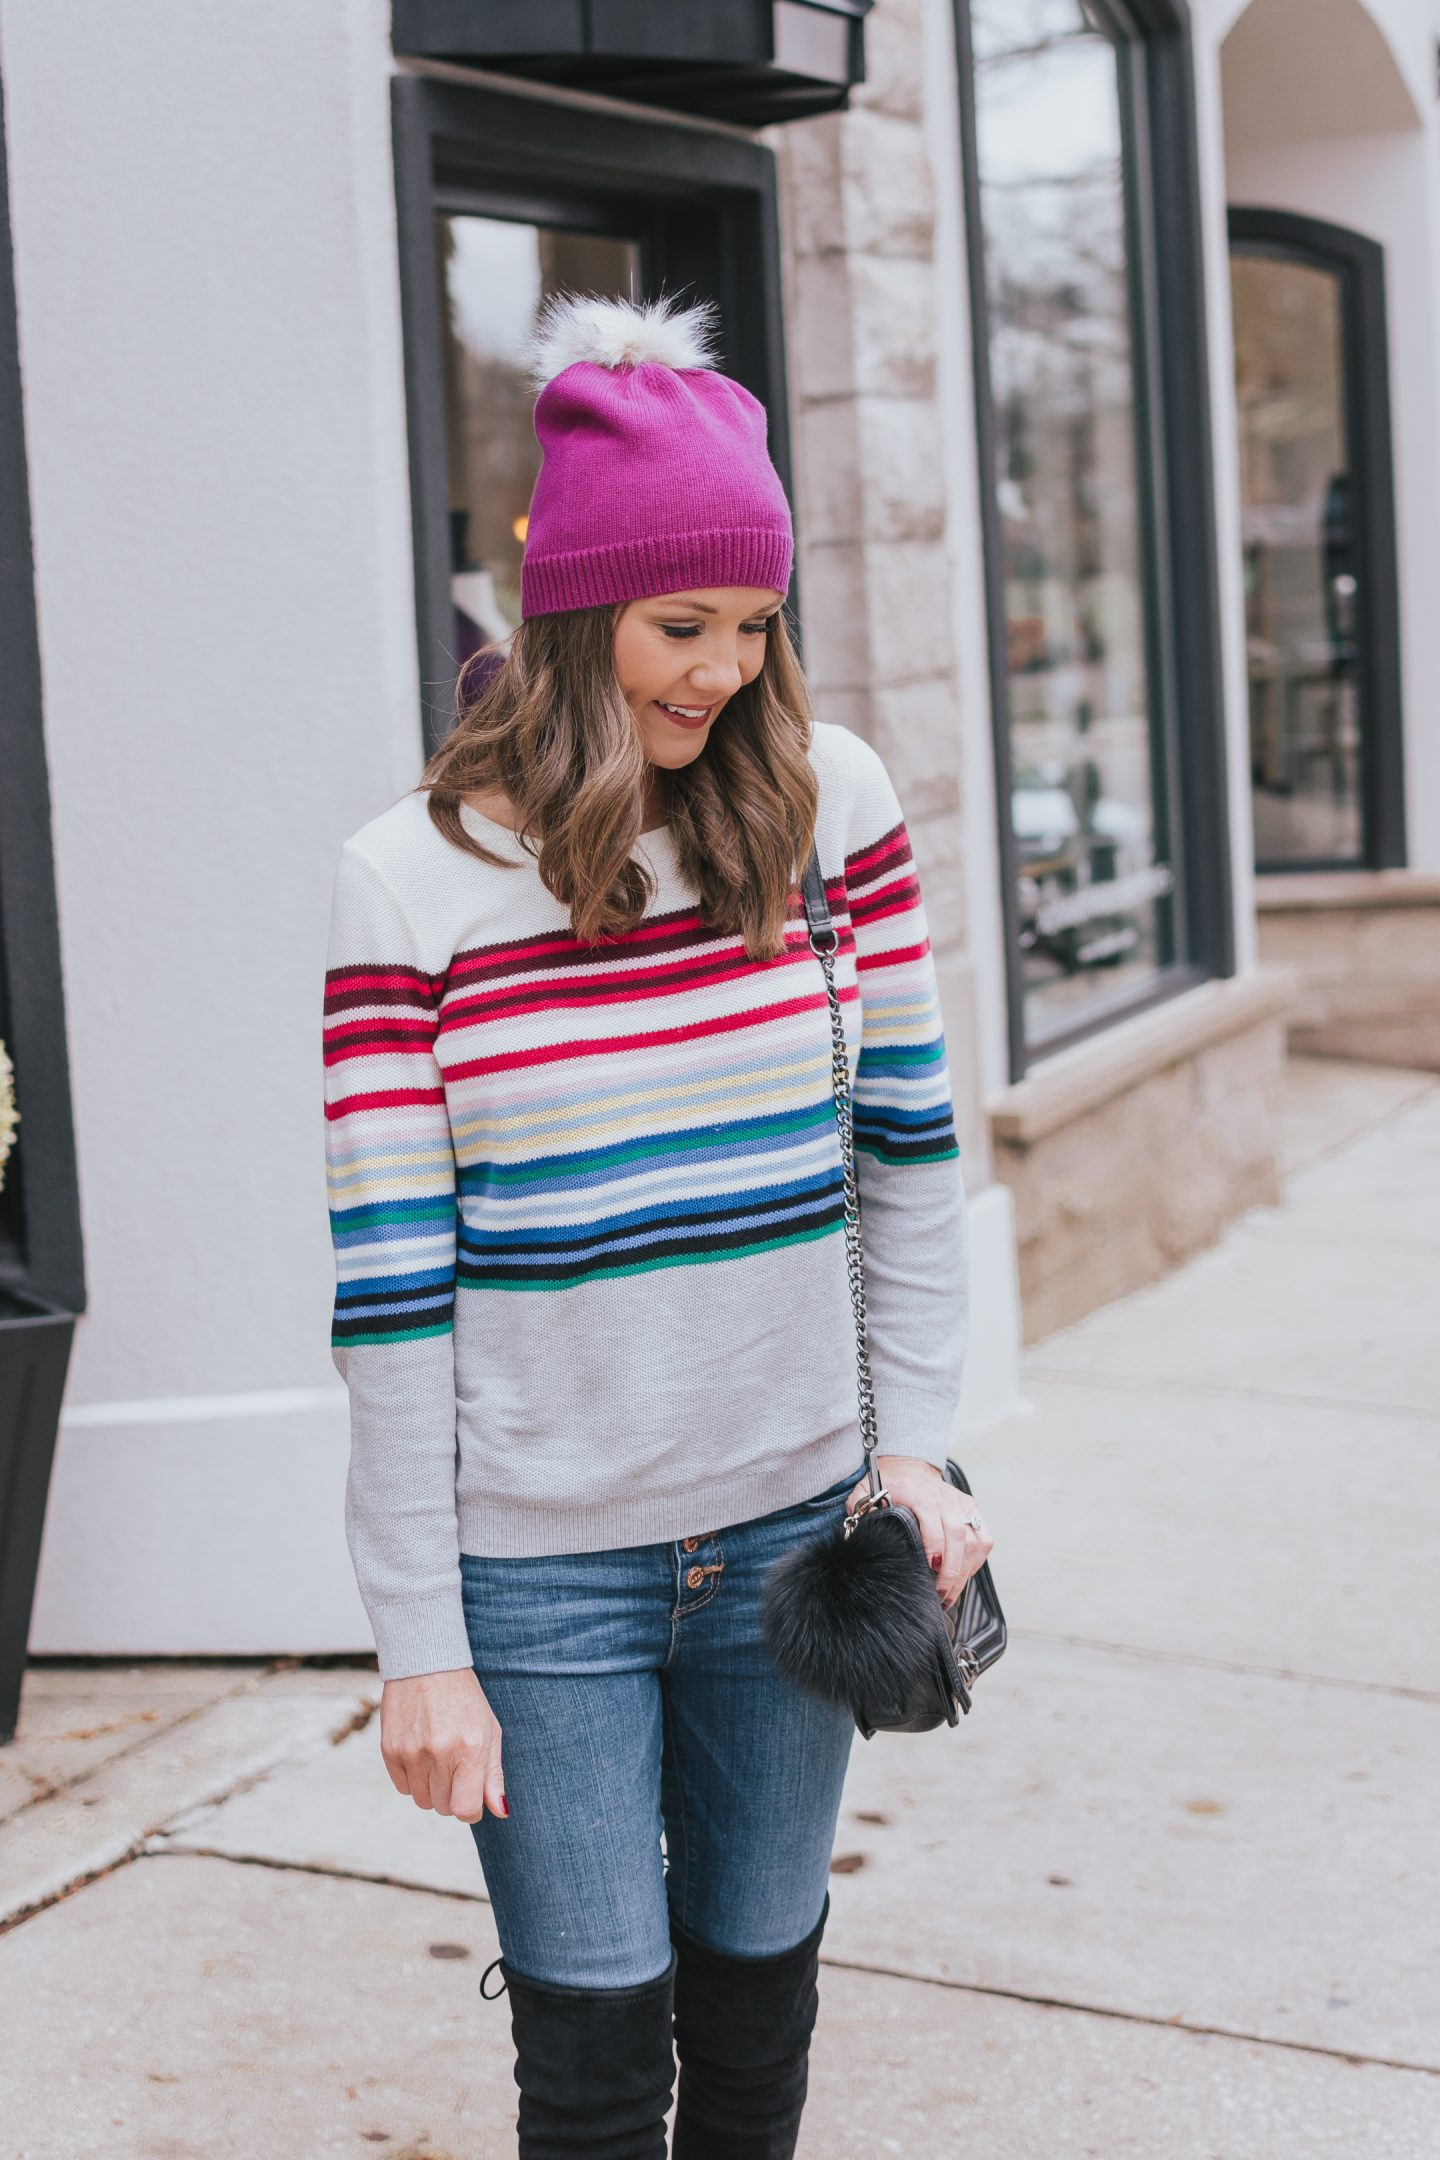 bright and colorful, Talbots friends and family sale 2018, winter essentials with Talbots, the perfect gift for mom, mother in law, winter outerwear